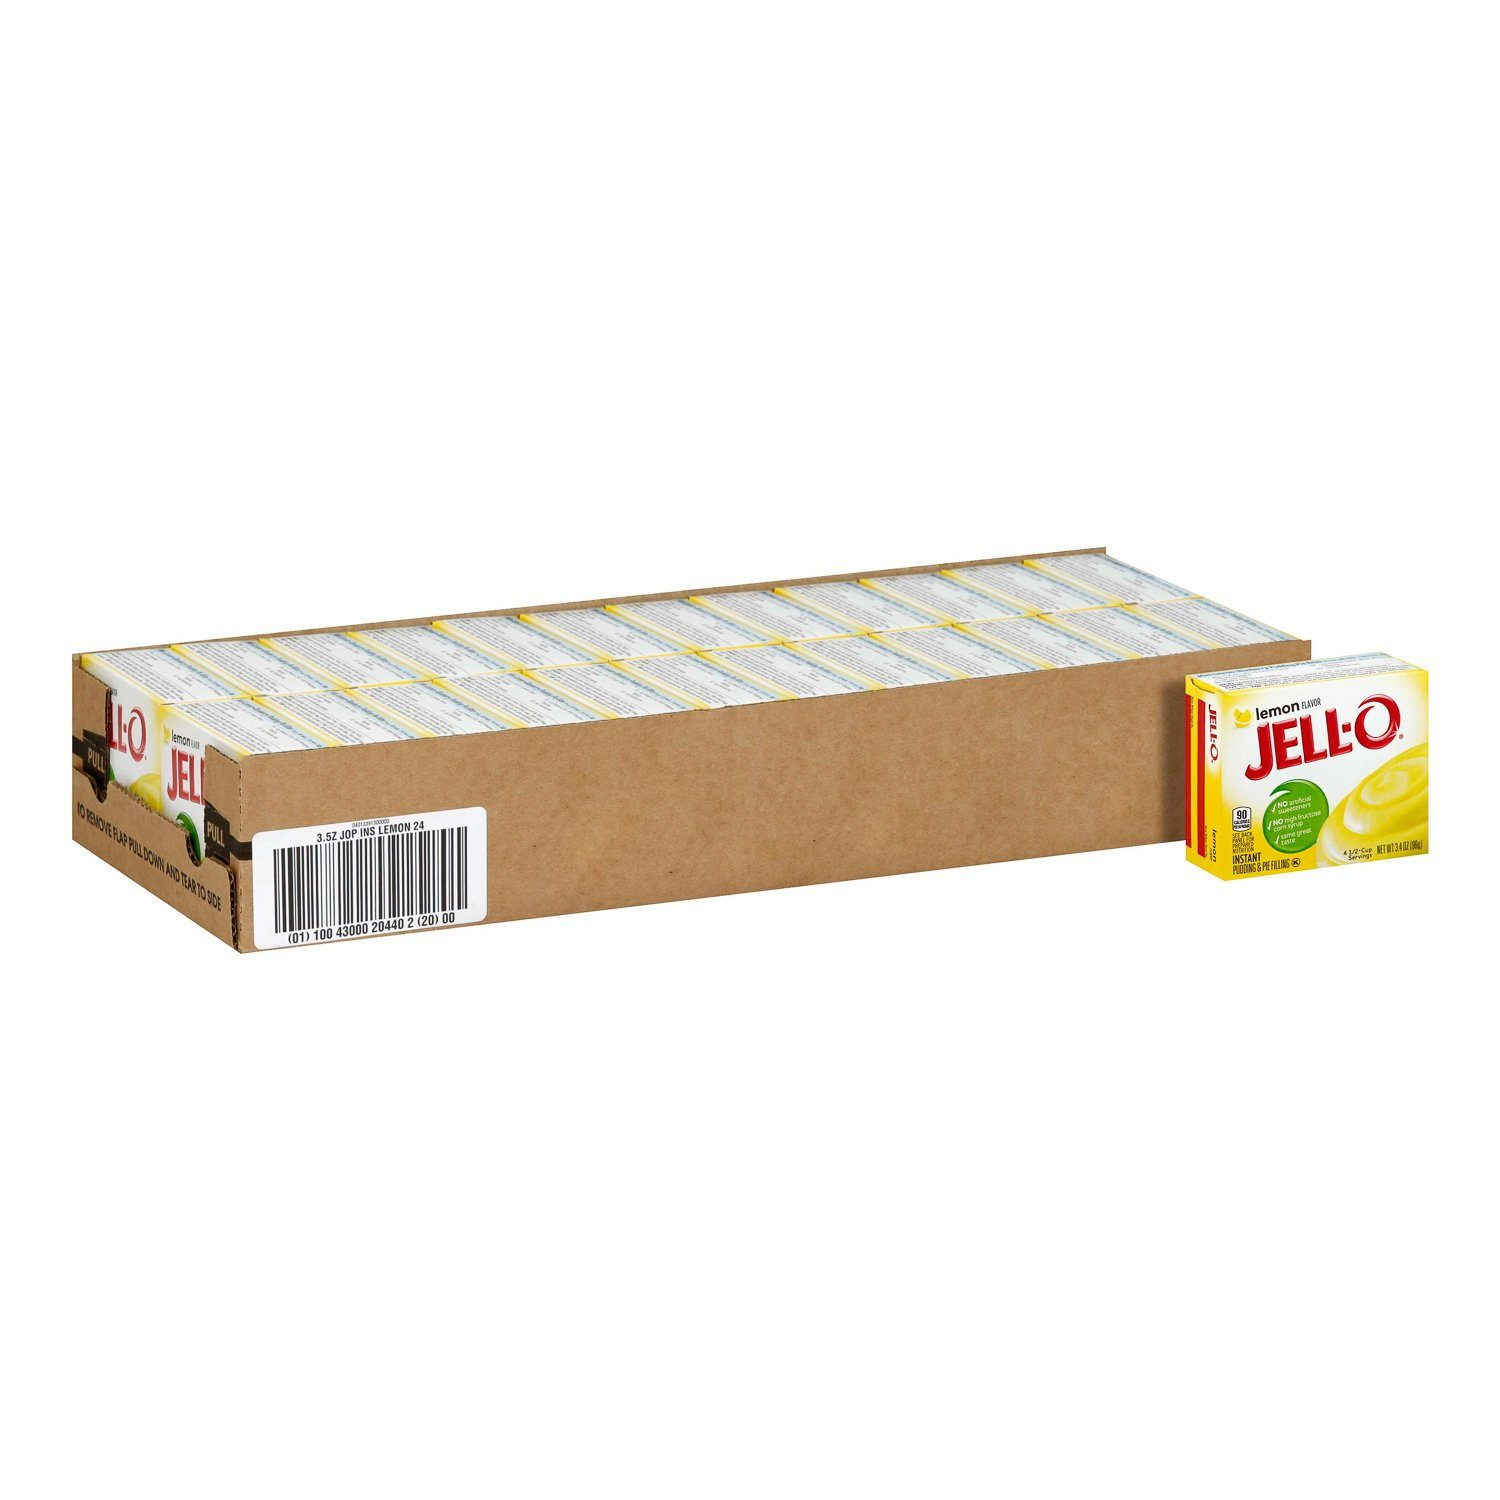 Jell-O Instant Pudding & Pie Filling Mixes Jell-O Lemon 3.4 Oz-24 Count